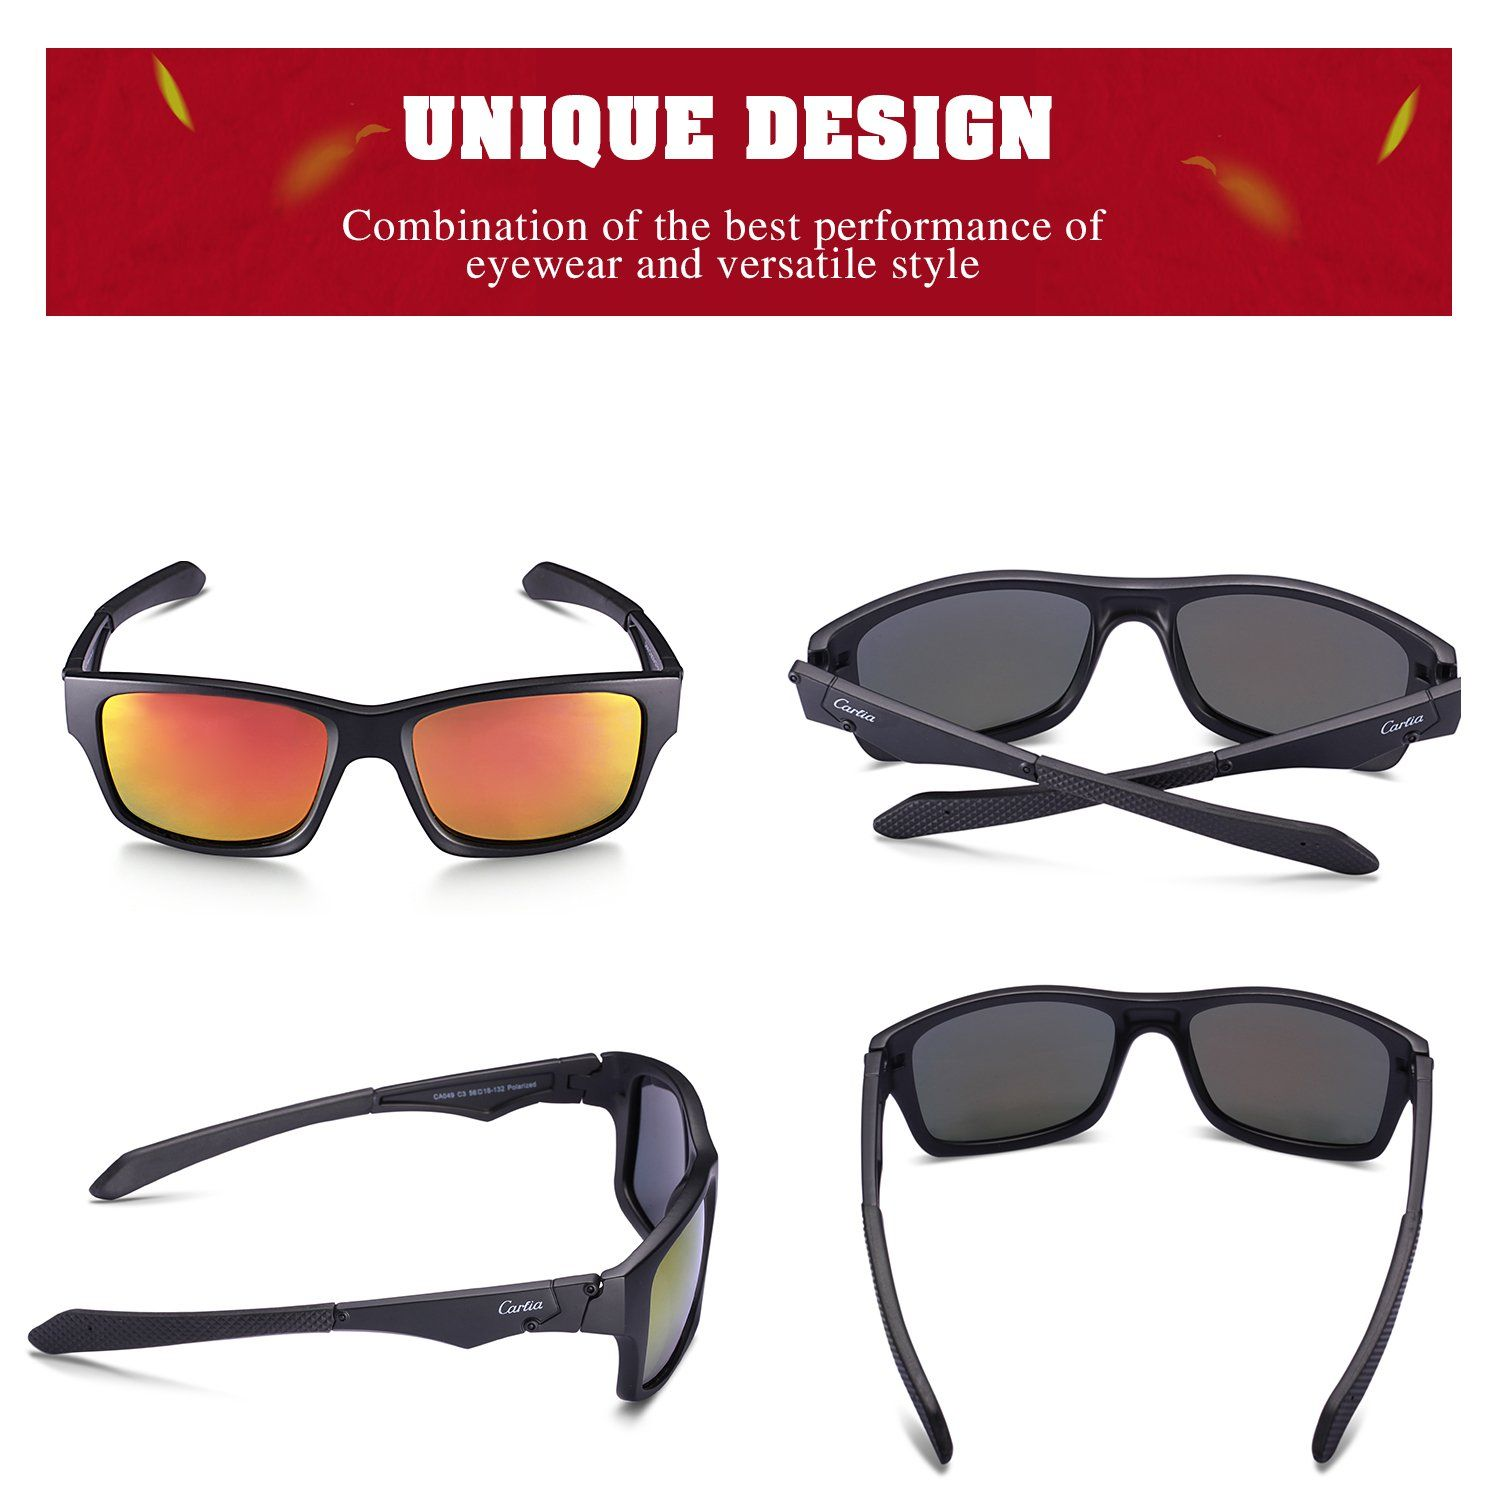 ab0ee947a4d Carfia Sports Sunglasses UV400 Polarized Sunglasses for Mens Womens Driving  Running Fishing Golf TR90 Unbreakable Frame